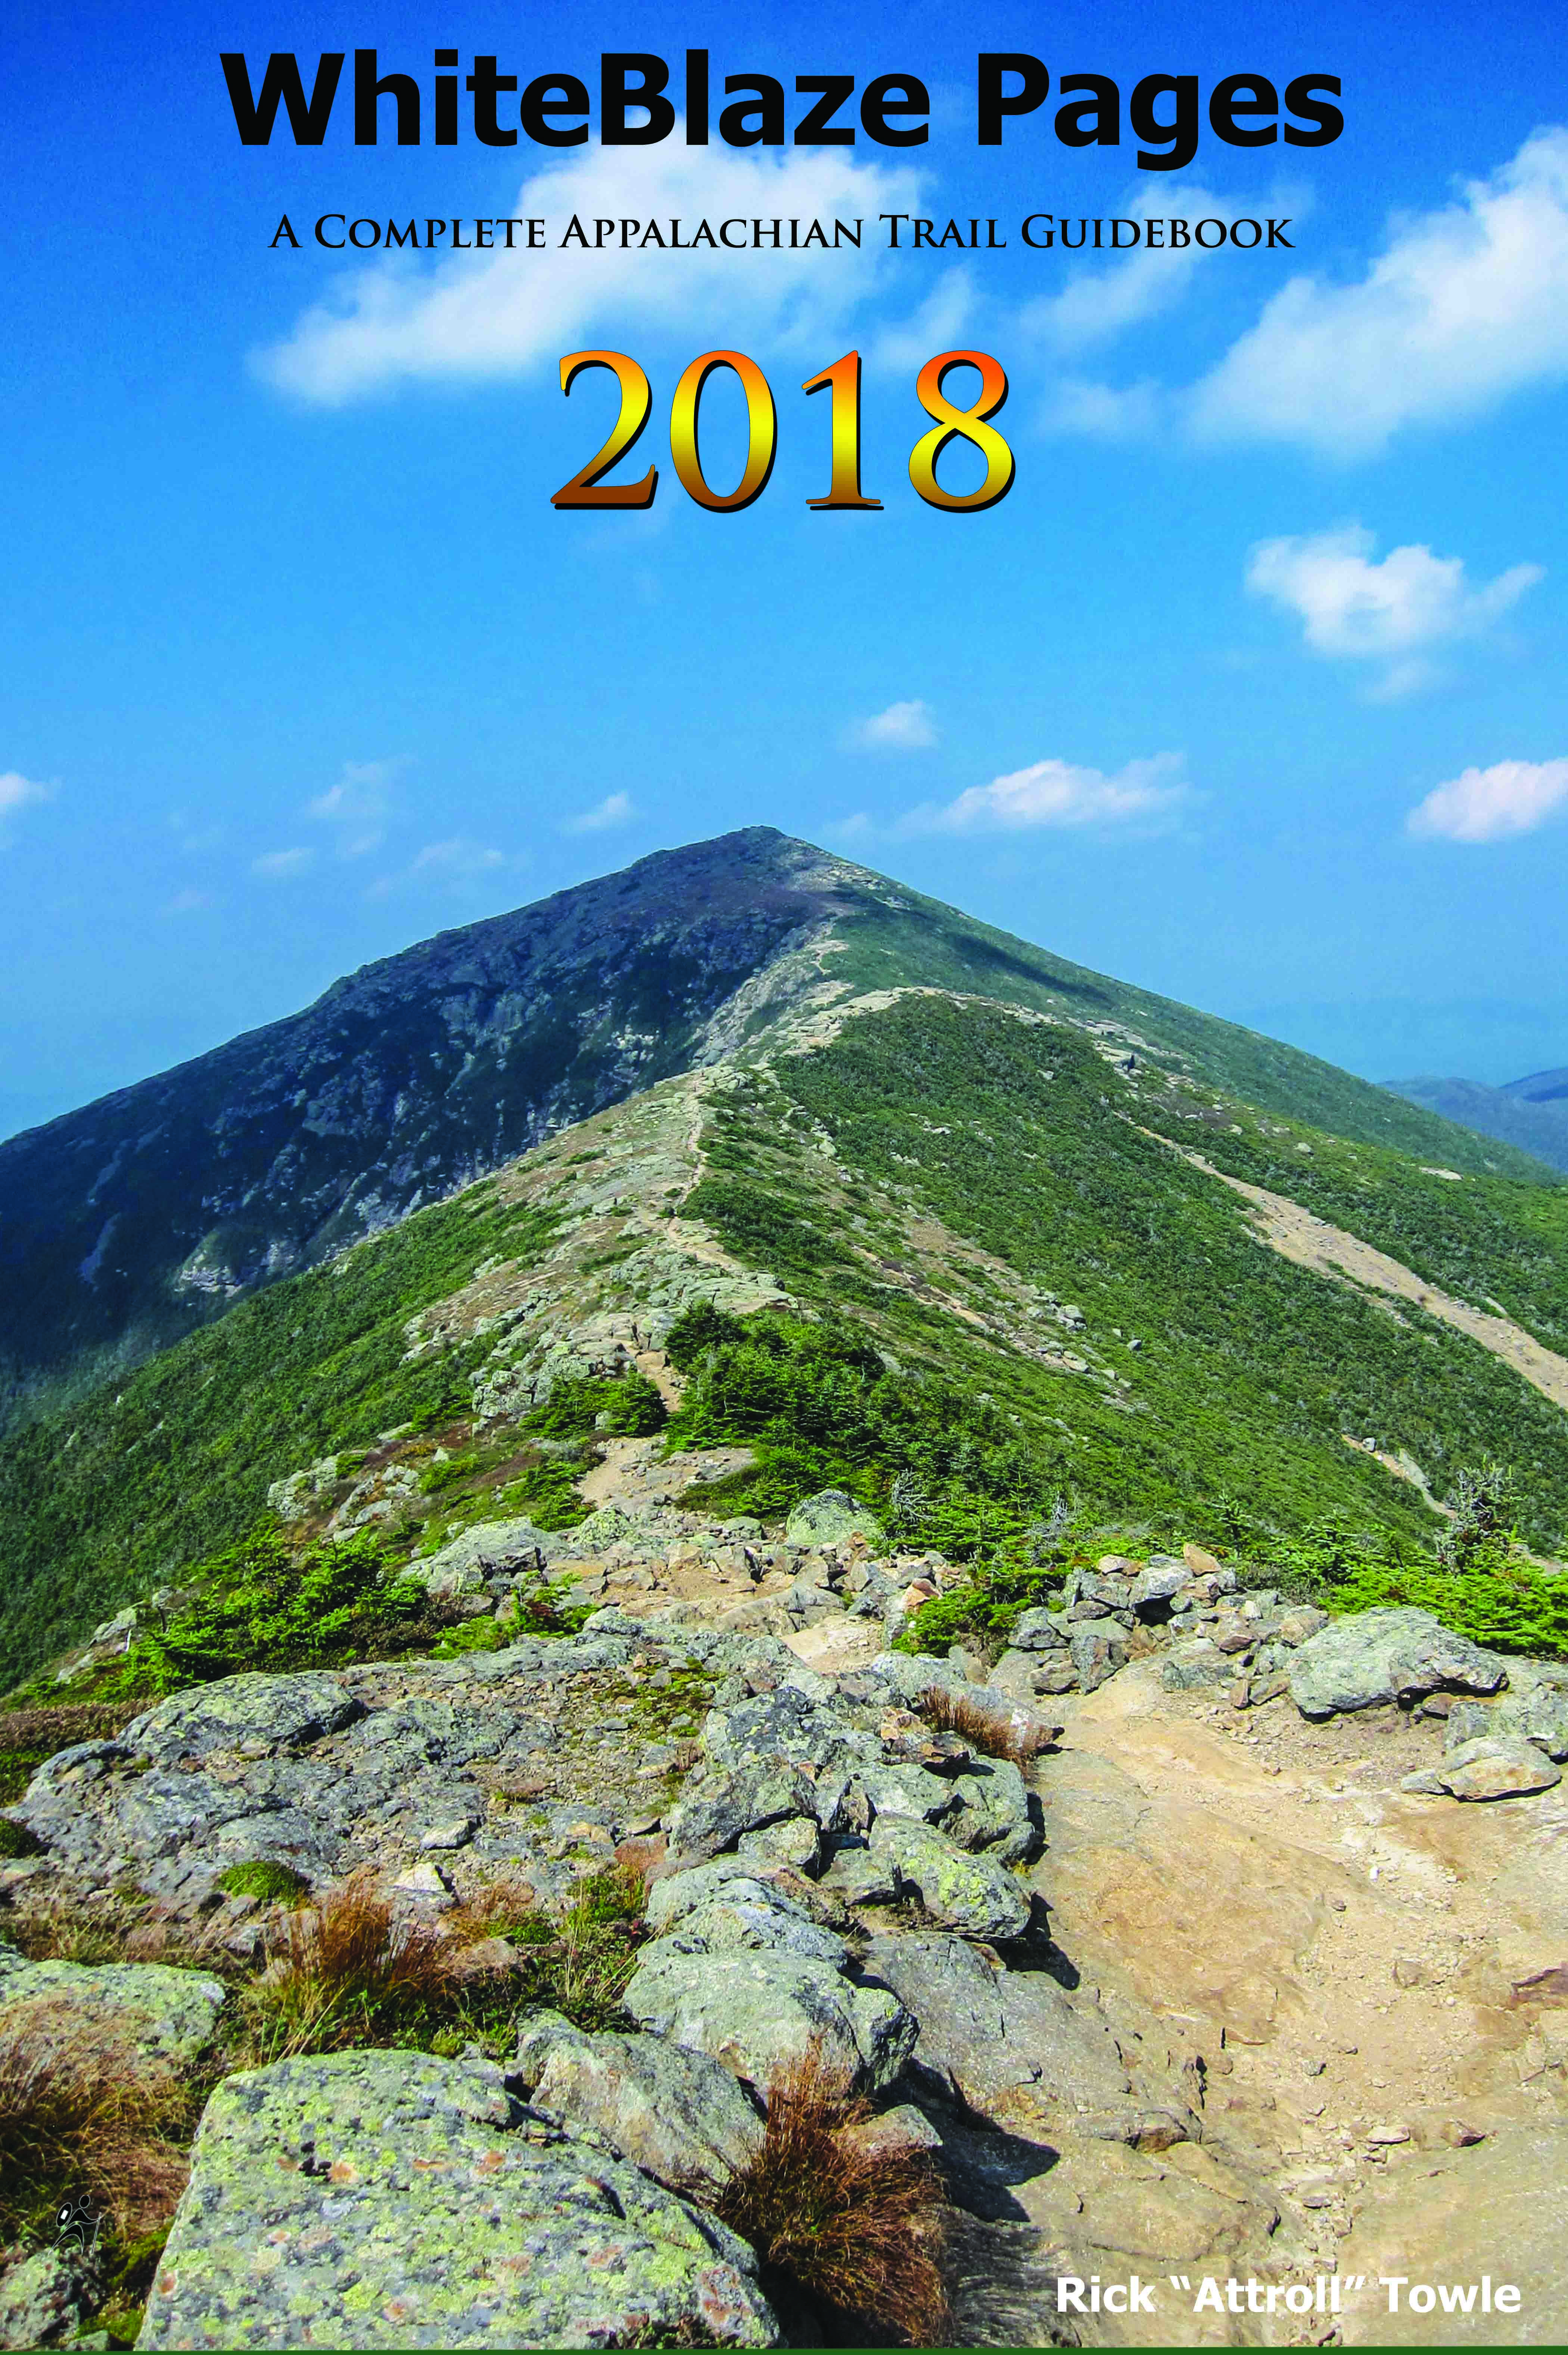 2018 Whiteblaze Pages cover